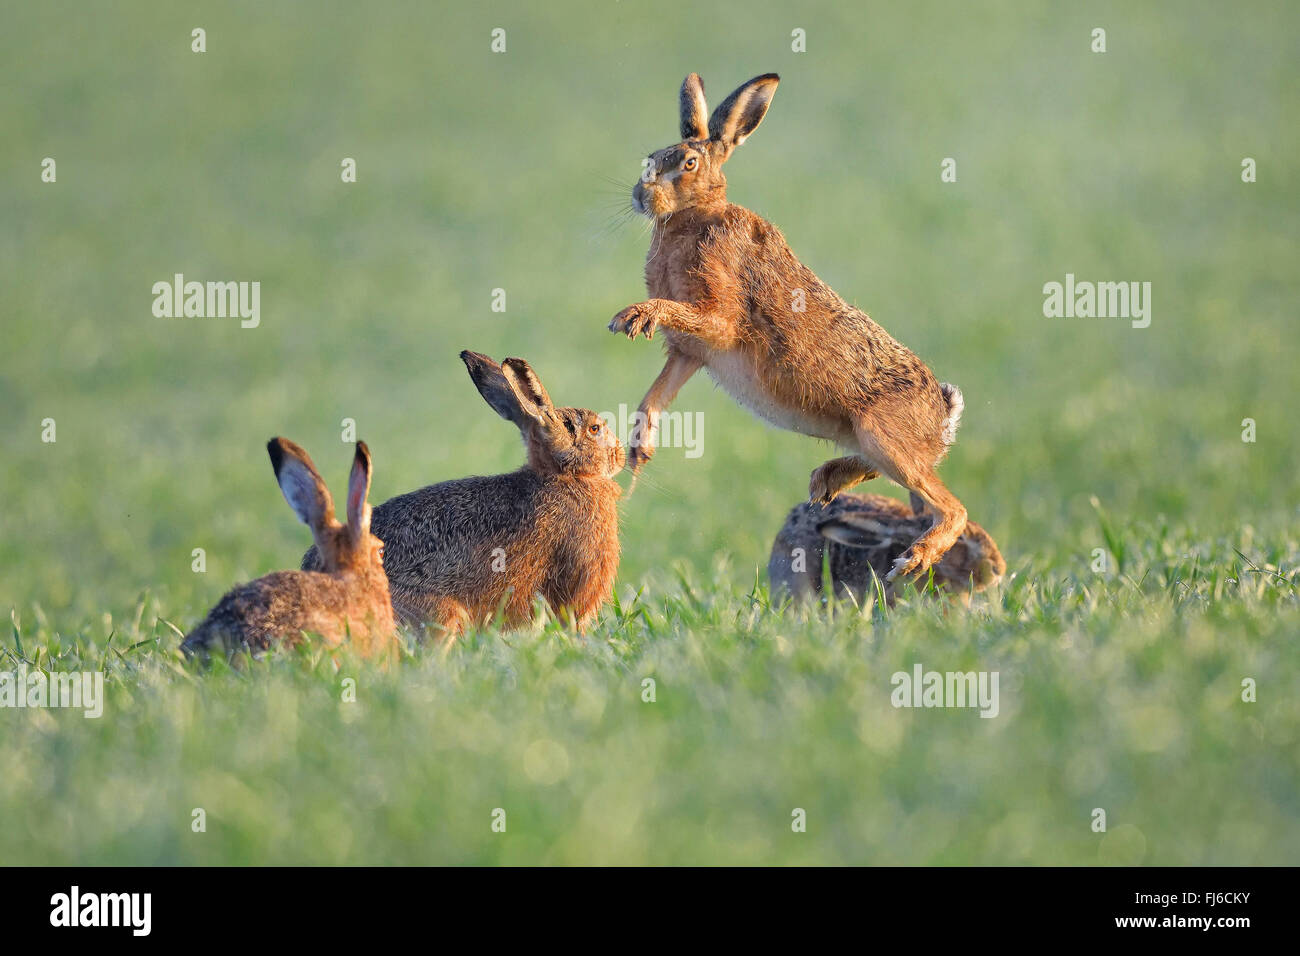 European hare, Brown hare (Lepus europaeus), males in fight during the mating season, Austria, Burgenland - Stock Image